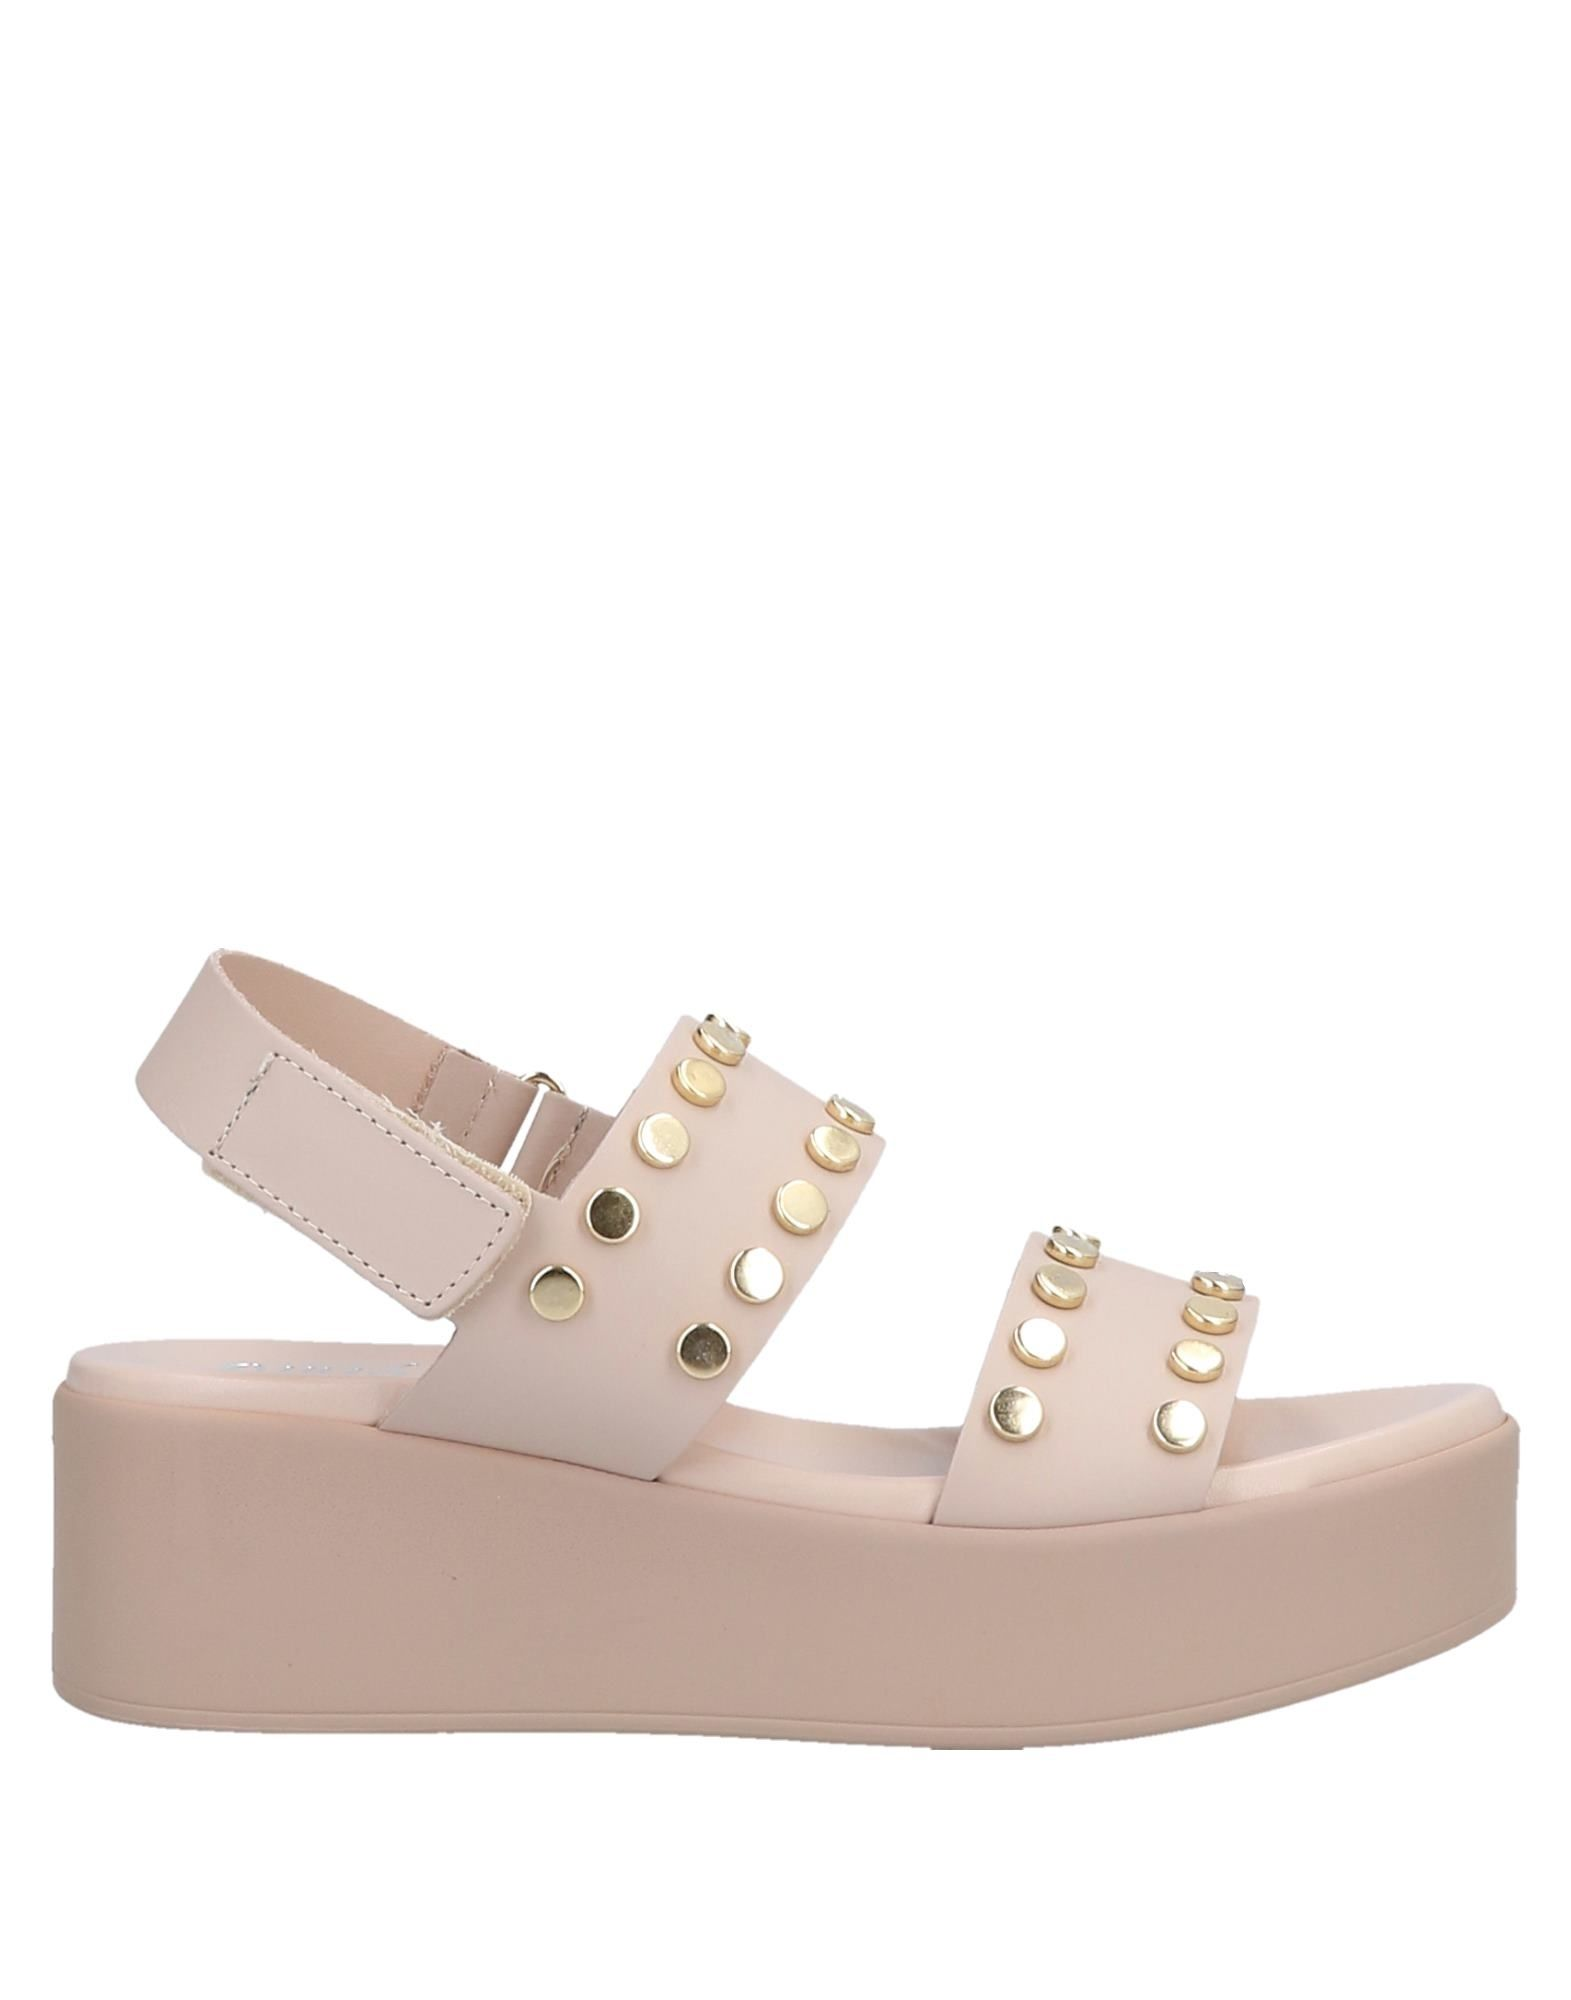 Ovye' By Cristina Lucchi Sandals Ovye' - Women Ovye' Sandals By Cristina Lucchi Sandals online on  United Kingdom - 11564865NS 6afc9e